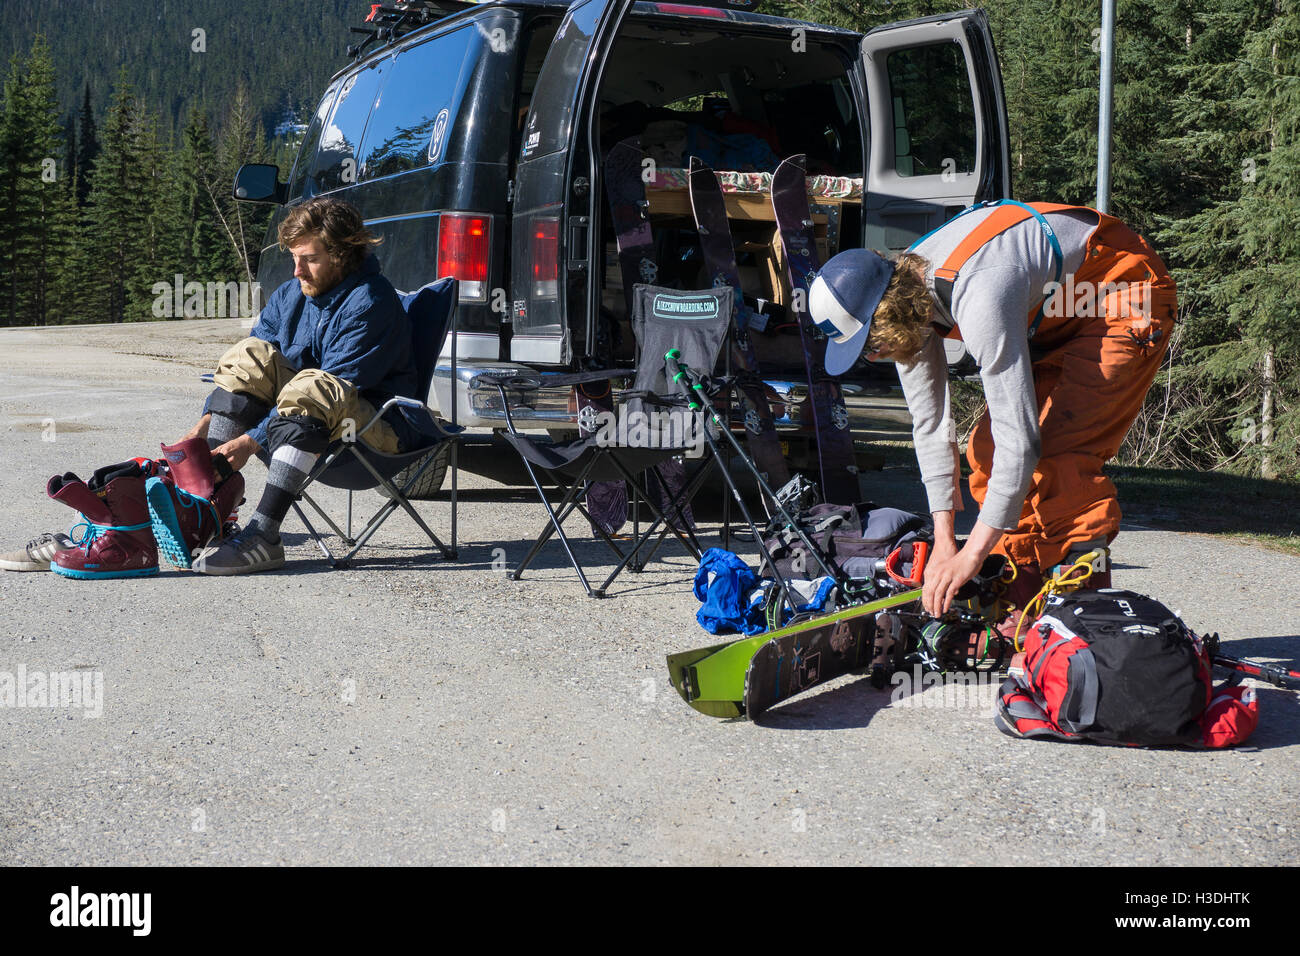 Backcountry snowboarders gearing up on the side of the road - Stock Image